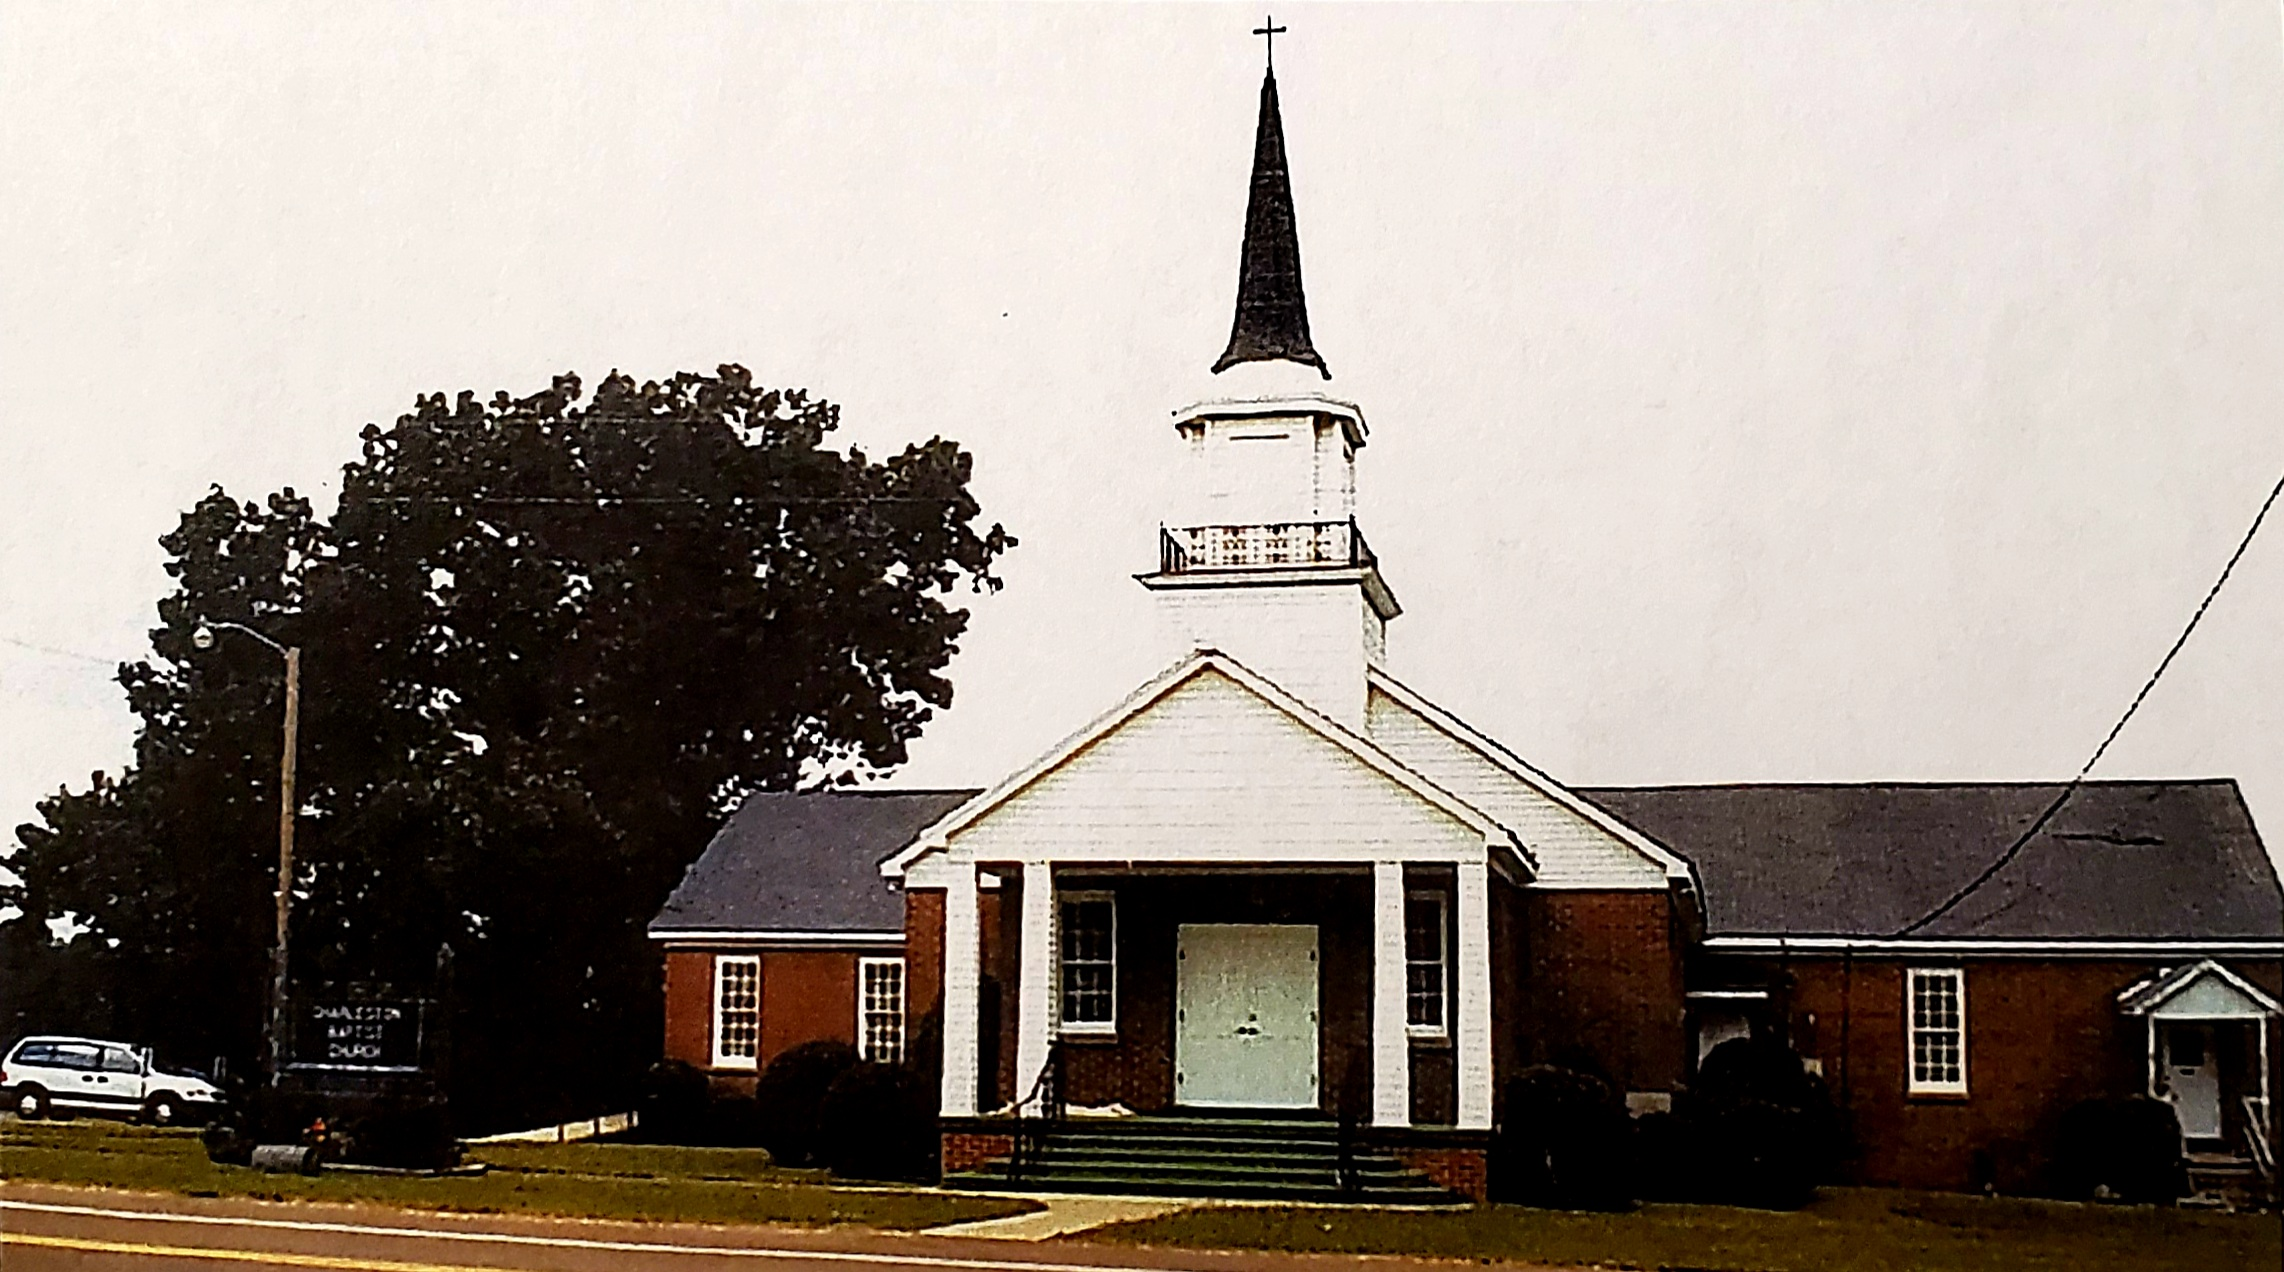 Charleston Baptist Church as it appears today.